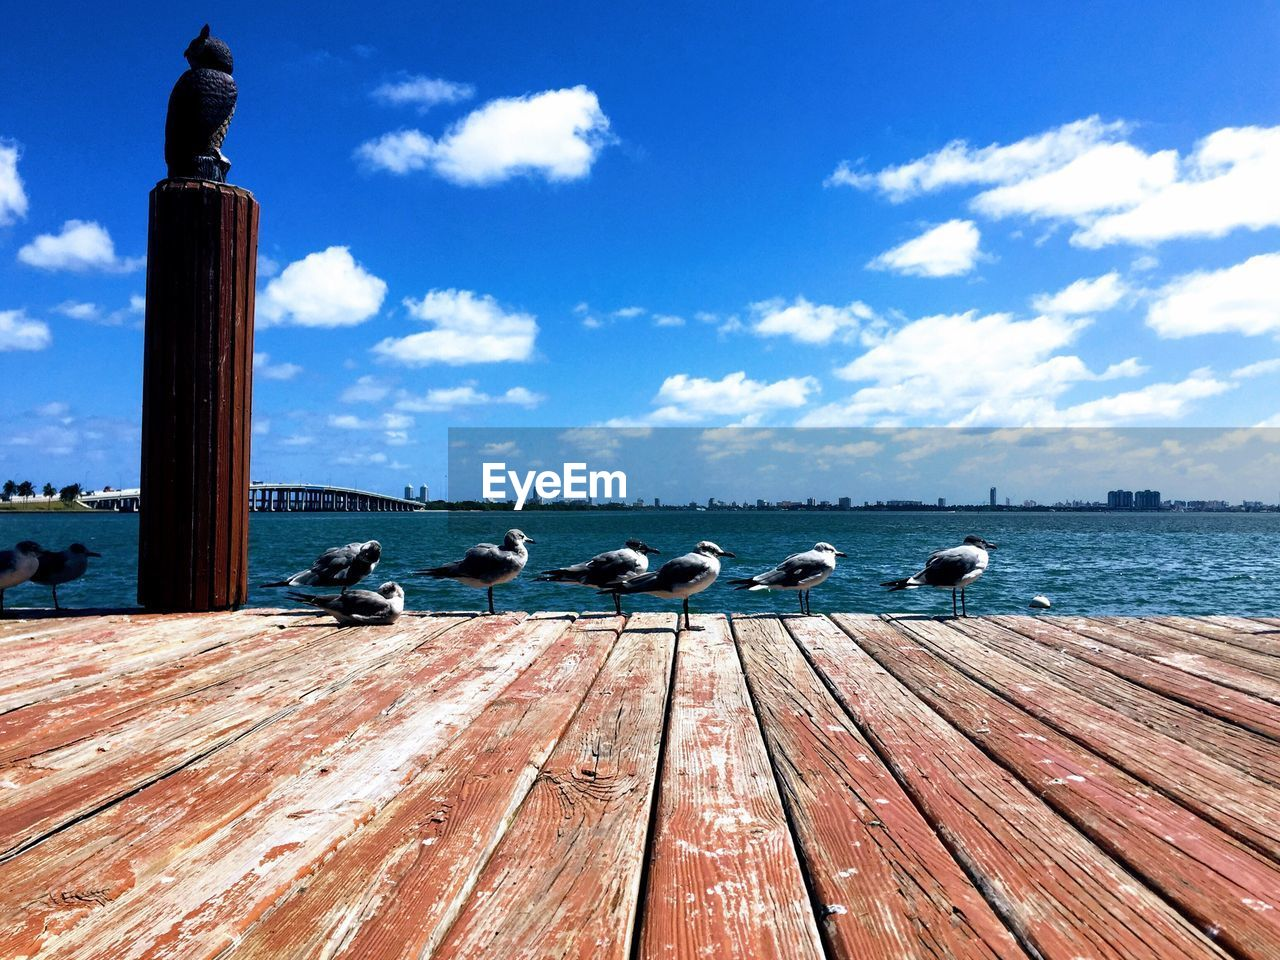 cloud - sky, sky, wood - material, water, group of animals, animal, nature, animal wildlife, animal themes, day, no people, animals in the wild, bird, sea, vertebrate, outdoors, pier, blue, sunlight, seagull, wooden post